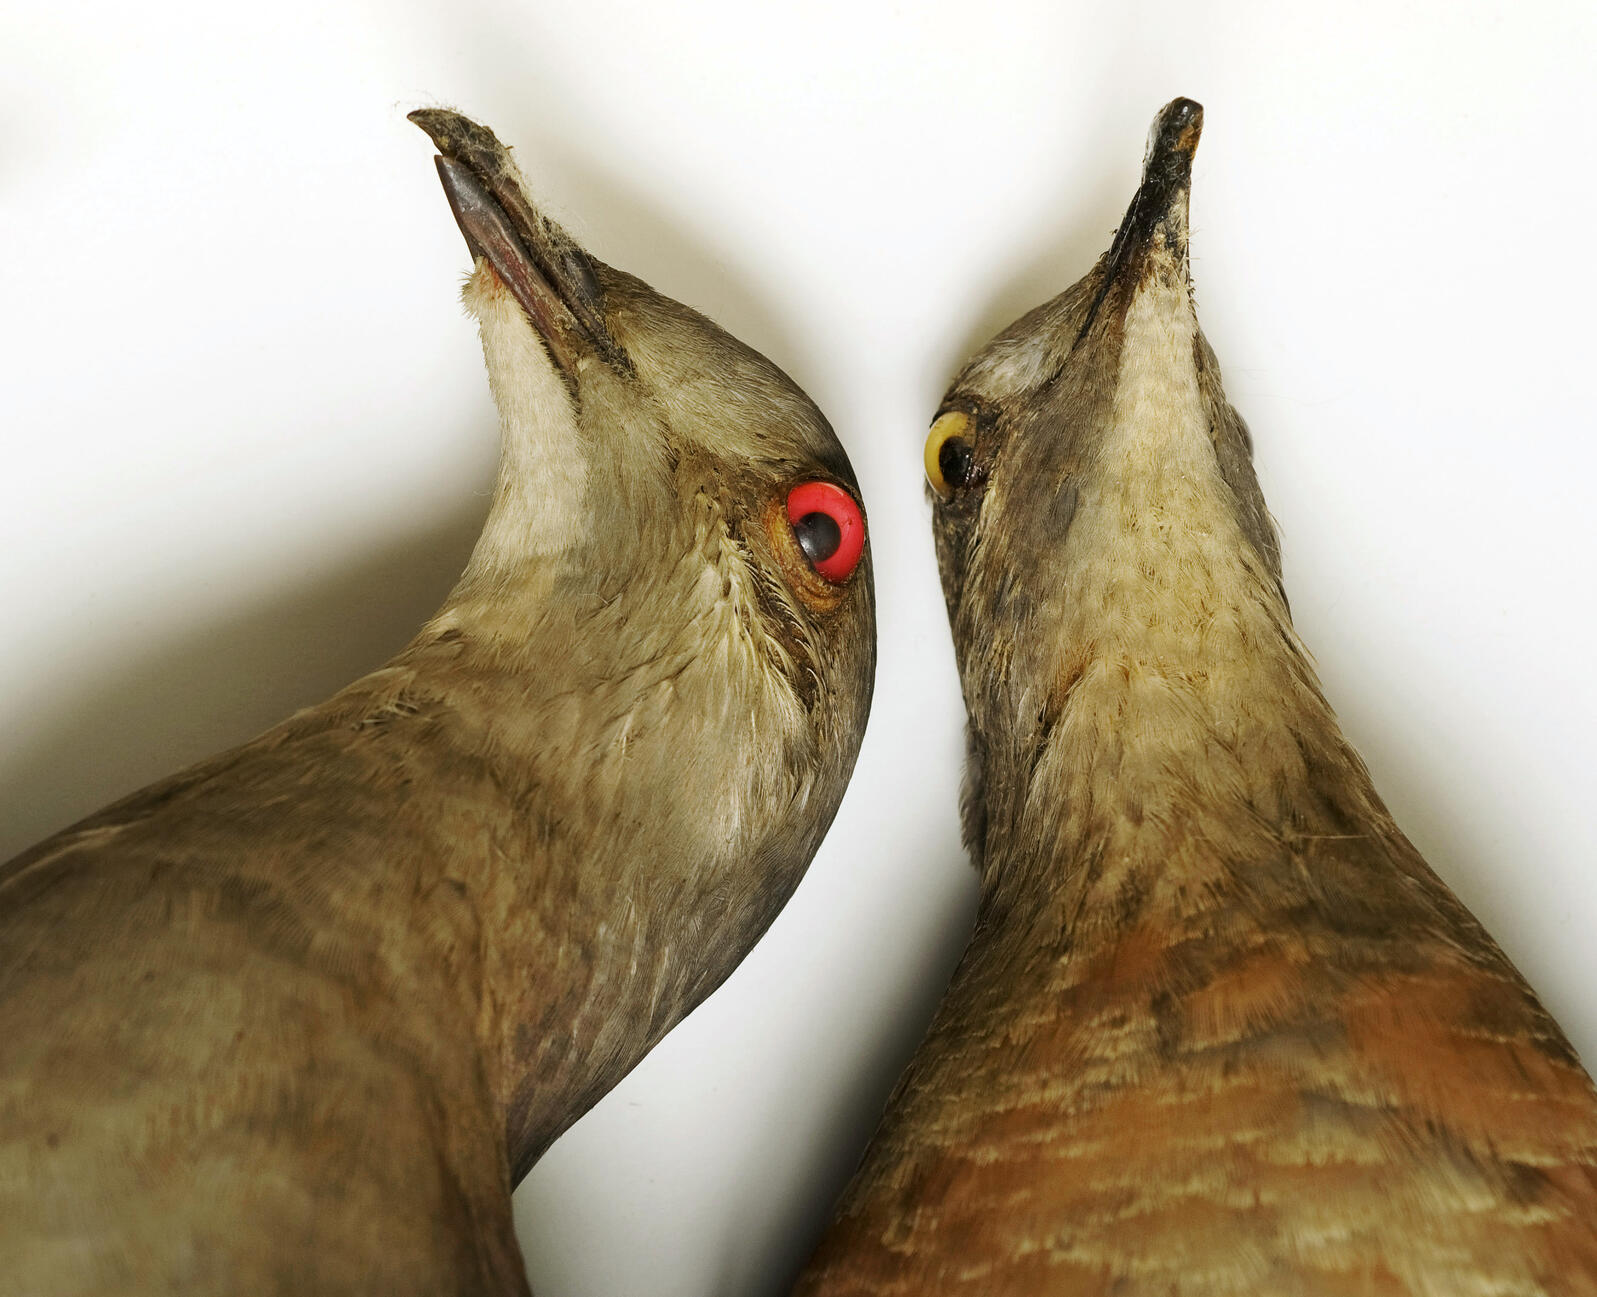 Passenger Pigeon. Field Museum of Natural History, Chicago. Photograph by Marc Schlossman/Panos Pictures